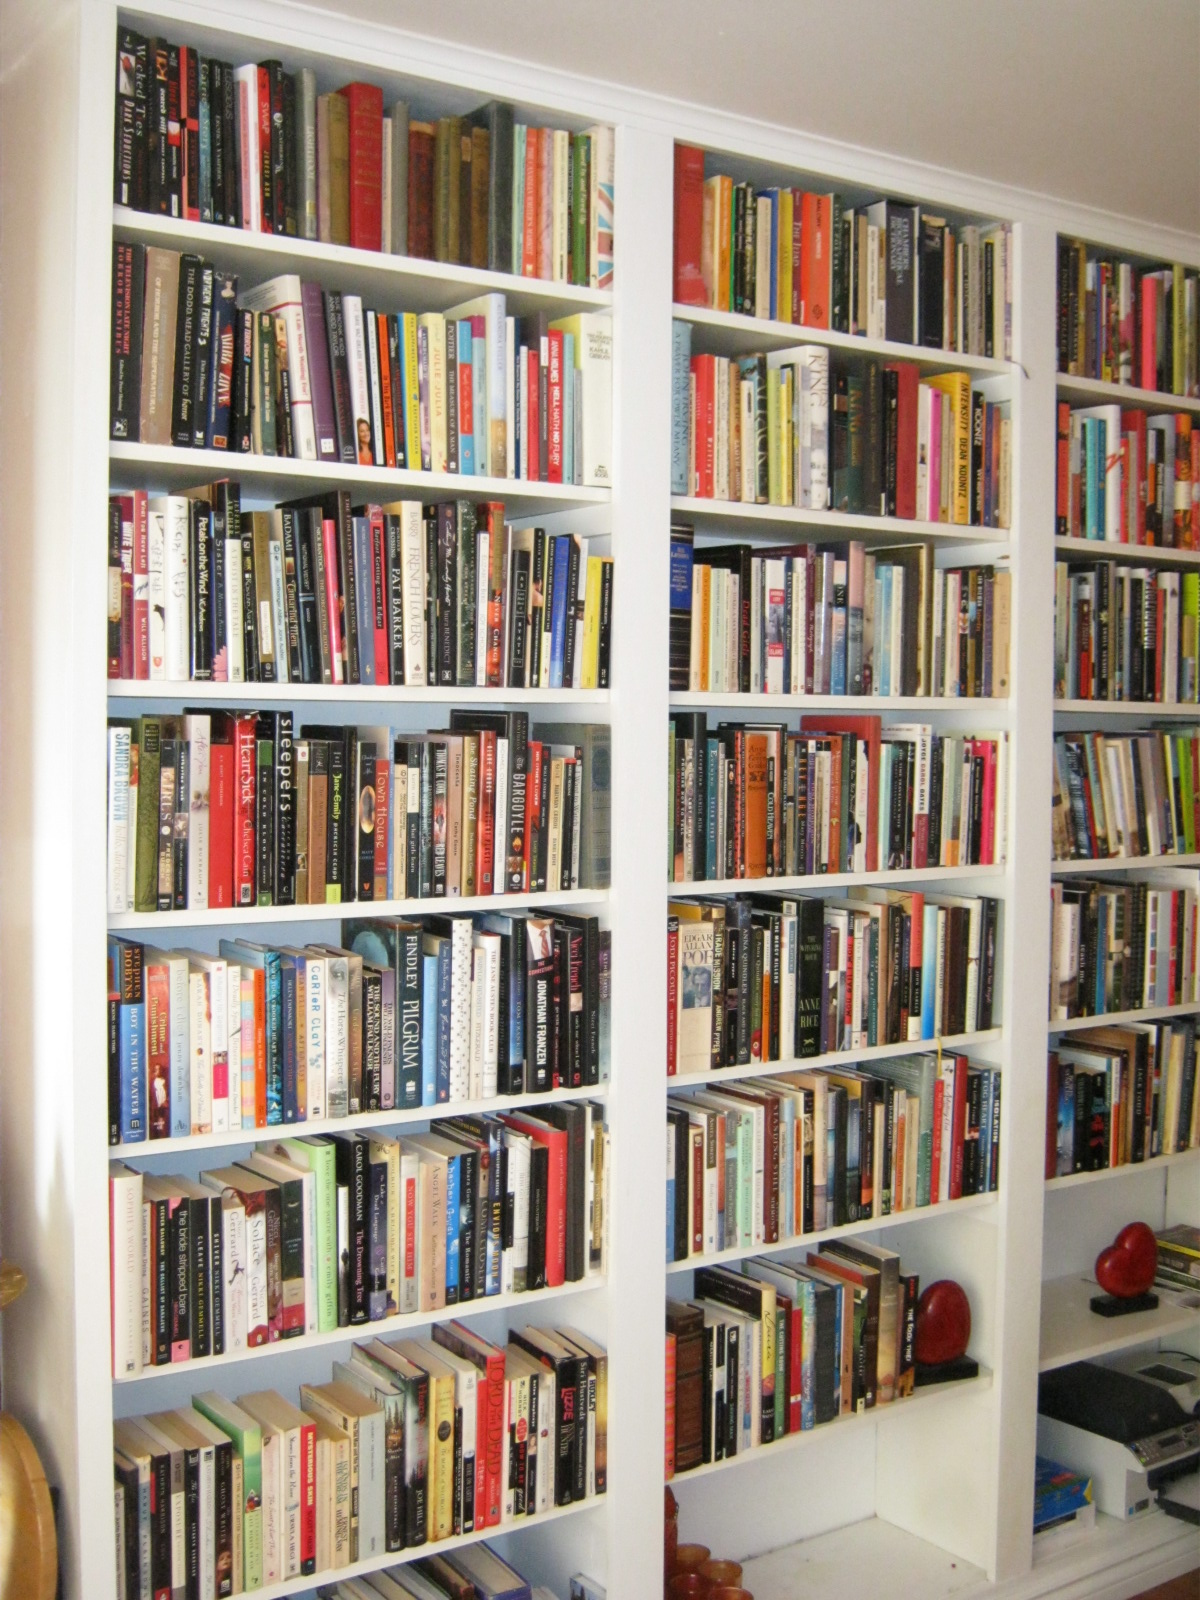 And Did You Know There Is Actually A Book Cover Archive?